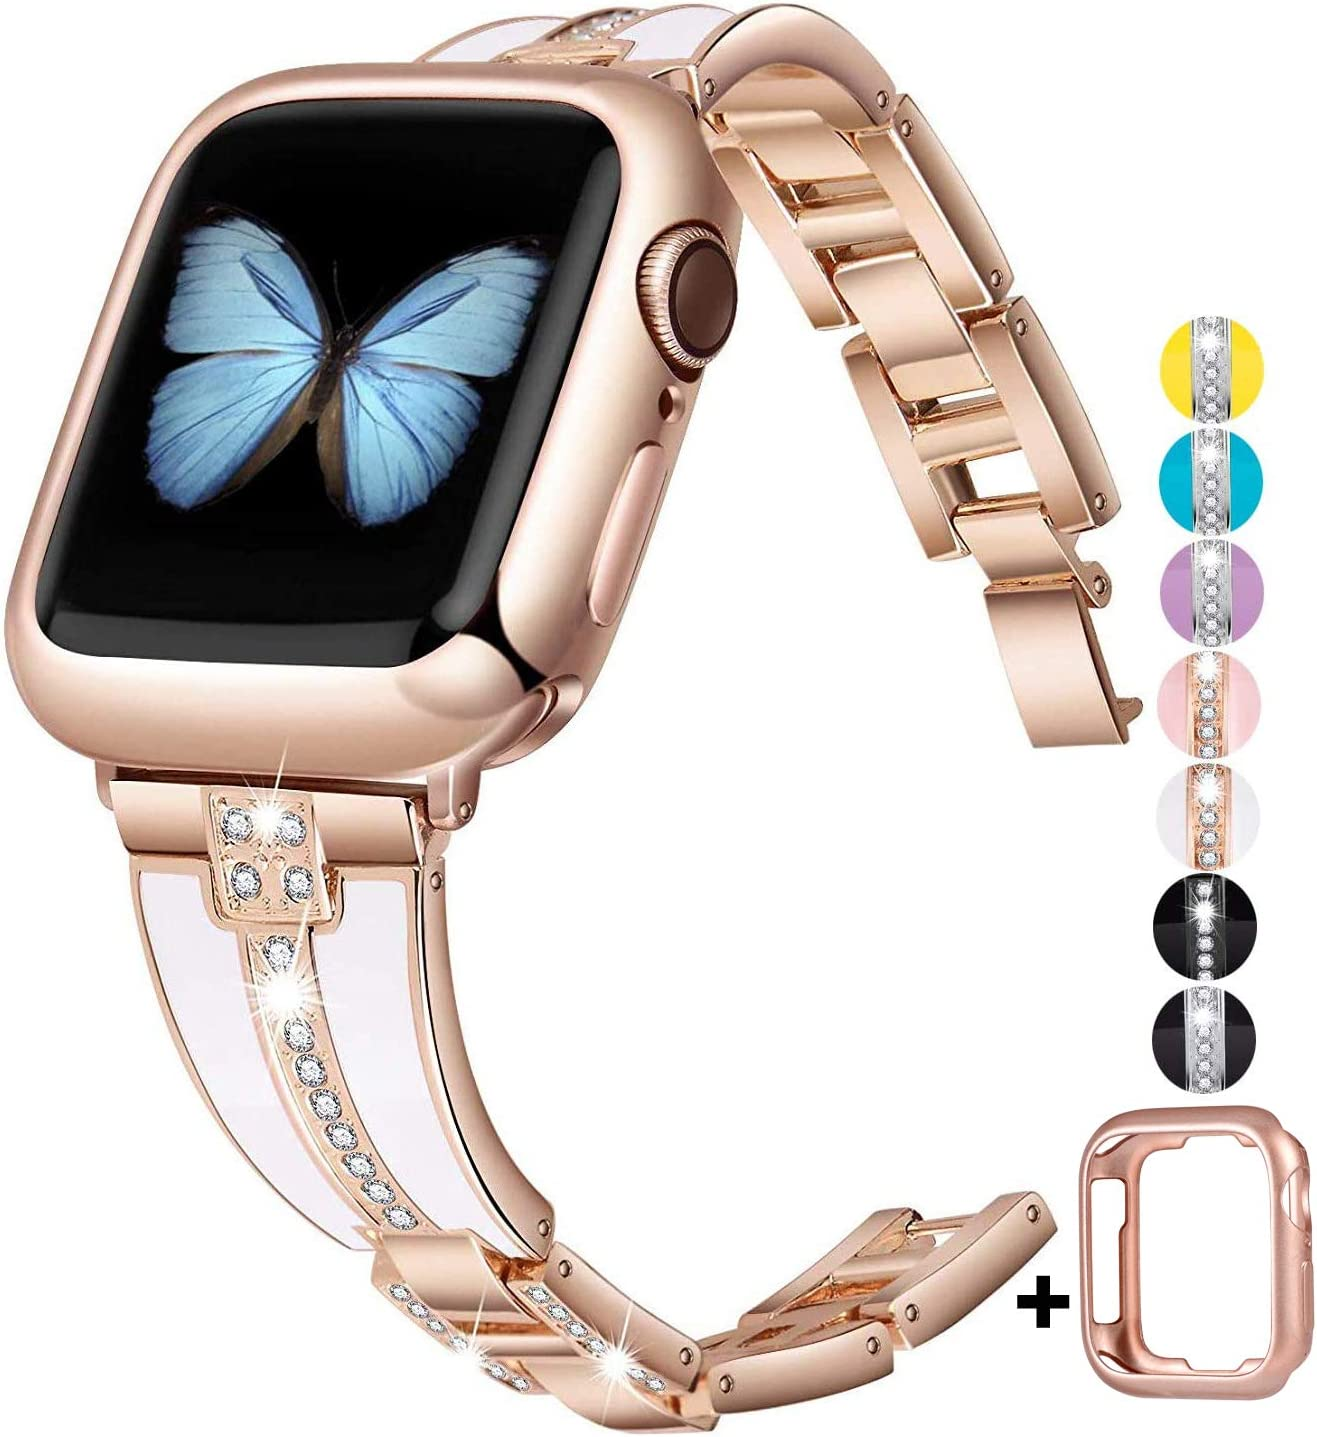 JSGJMY Bling Bands Compatible with Apple Watch Band 38mm 40mm 42mm 44mm with Case,Women Diamond Rhinestone Metal Jewelry Wristband Strap for iwatch Series SE/6/5/4/3/2/1 (Rose Gold+White, 38mm/40mm)